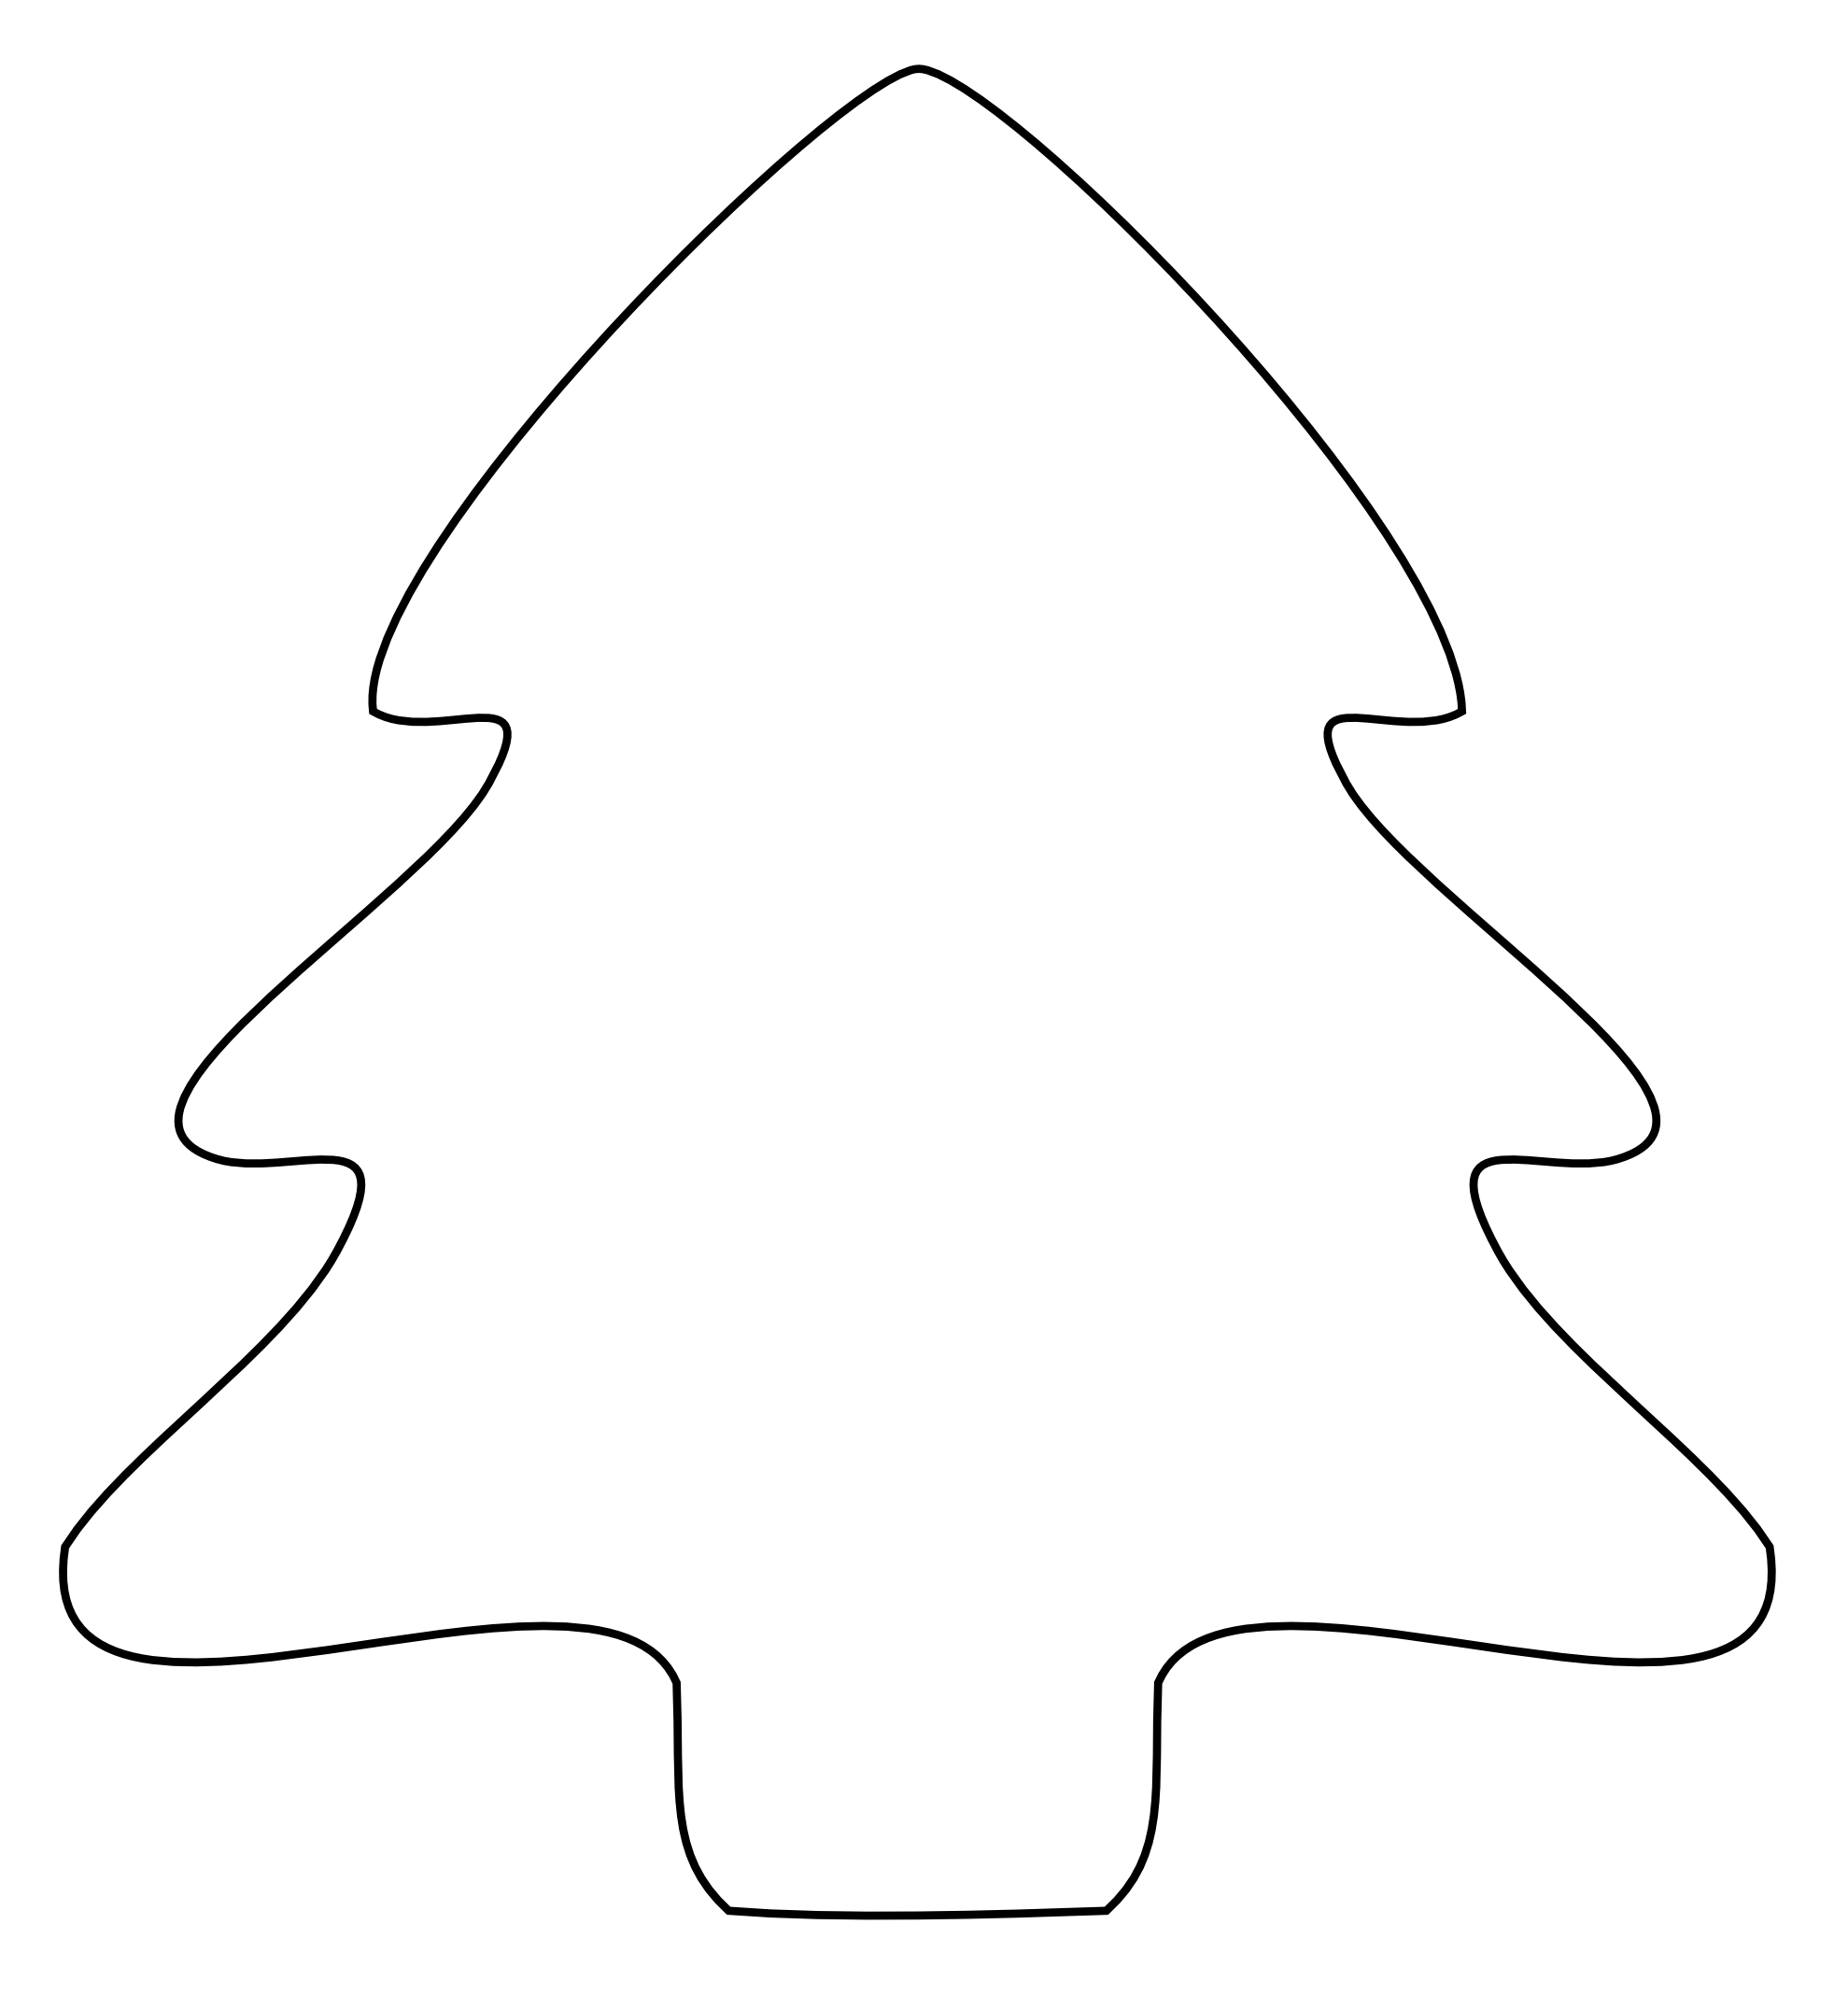 ... Christmas Tree Black And White | Clipart Panda - Free Clipart Images